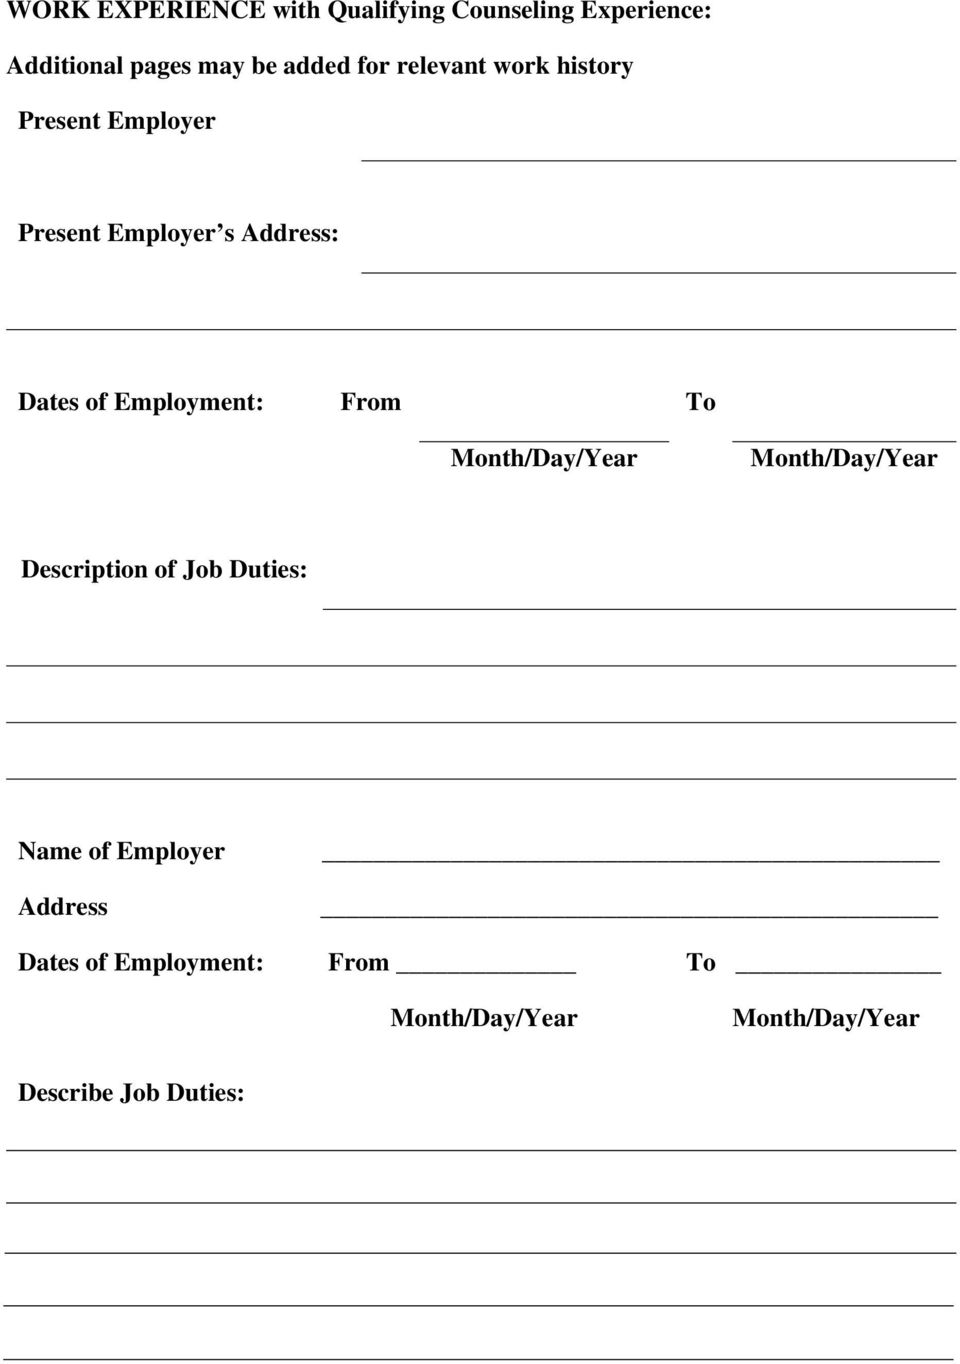 Employer s Address: Dates of Employment: From To Description of Job